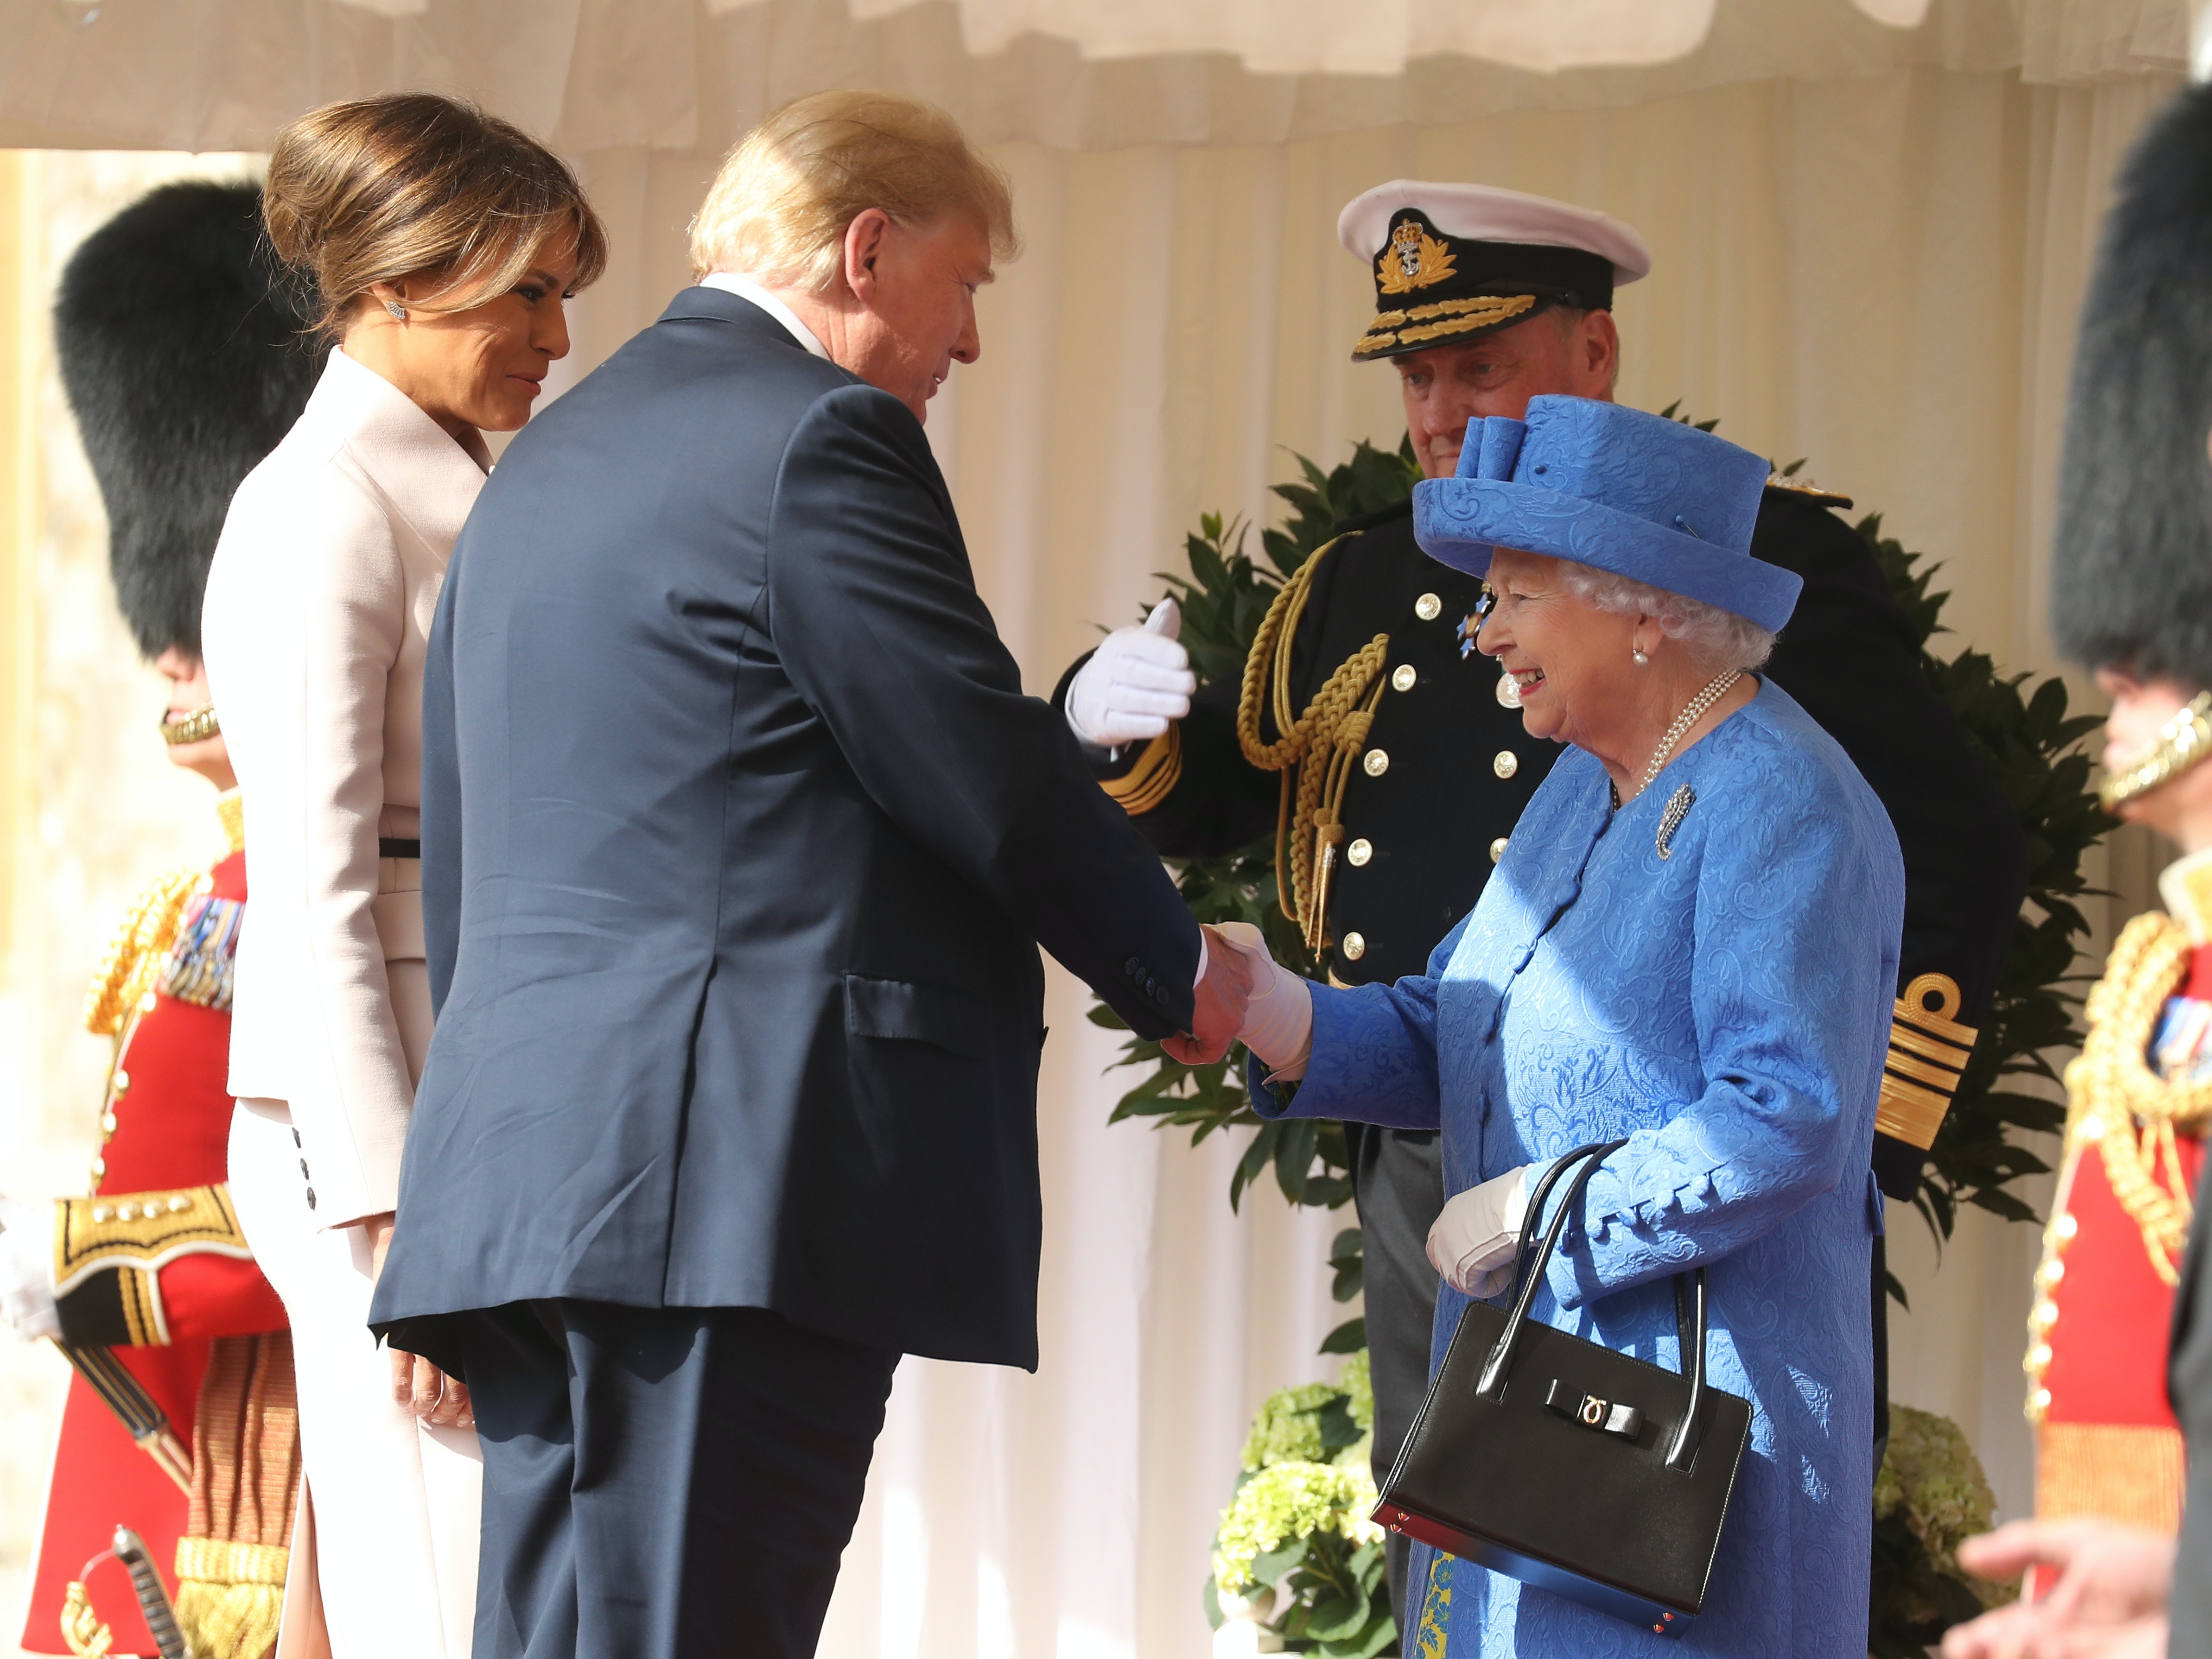 Photos Of Queen Elizabeth With The Trumps Vs Obamas Show How The